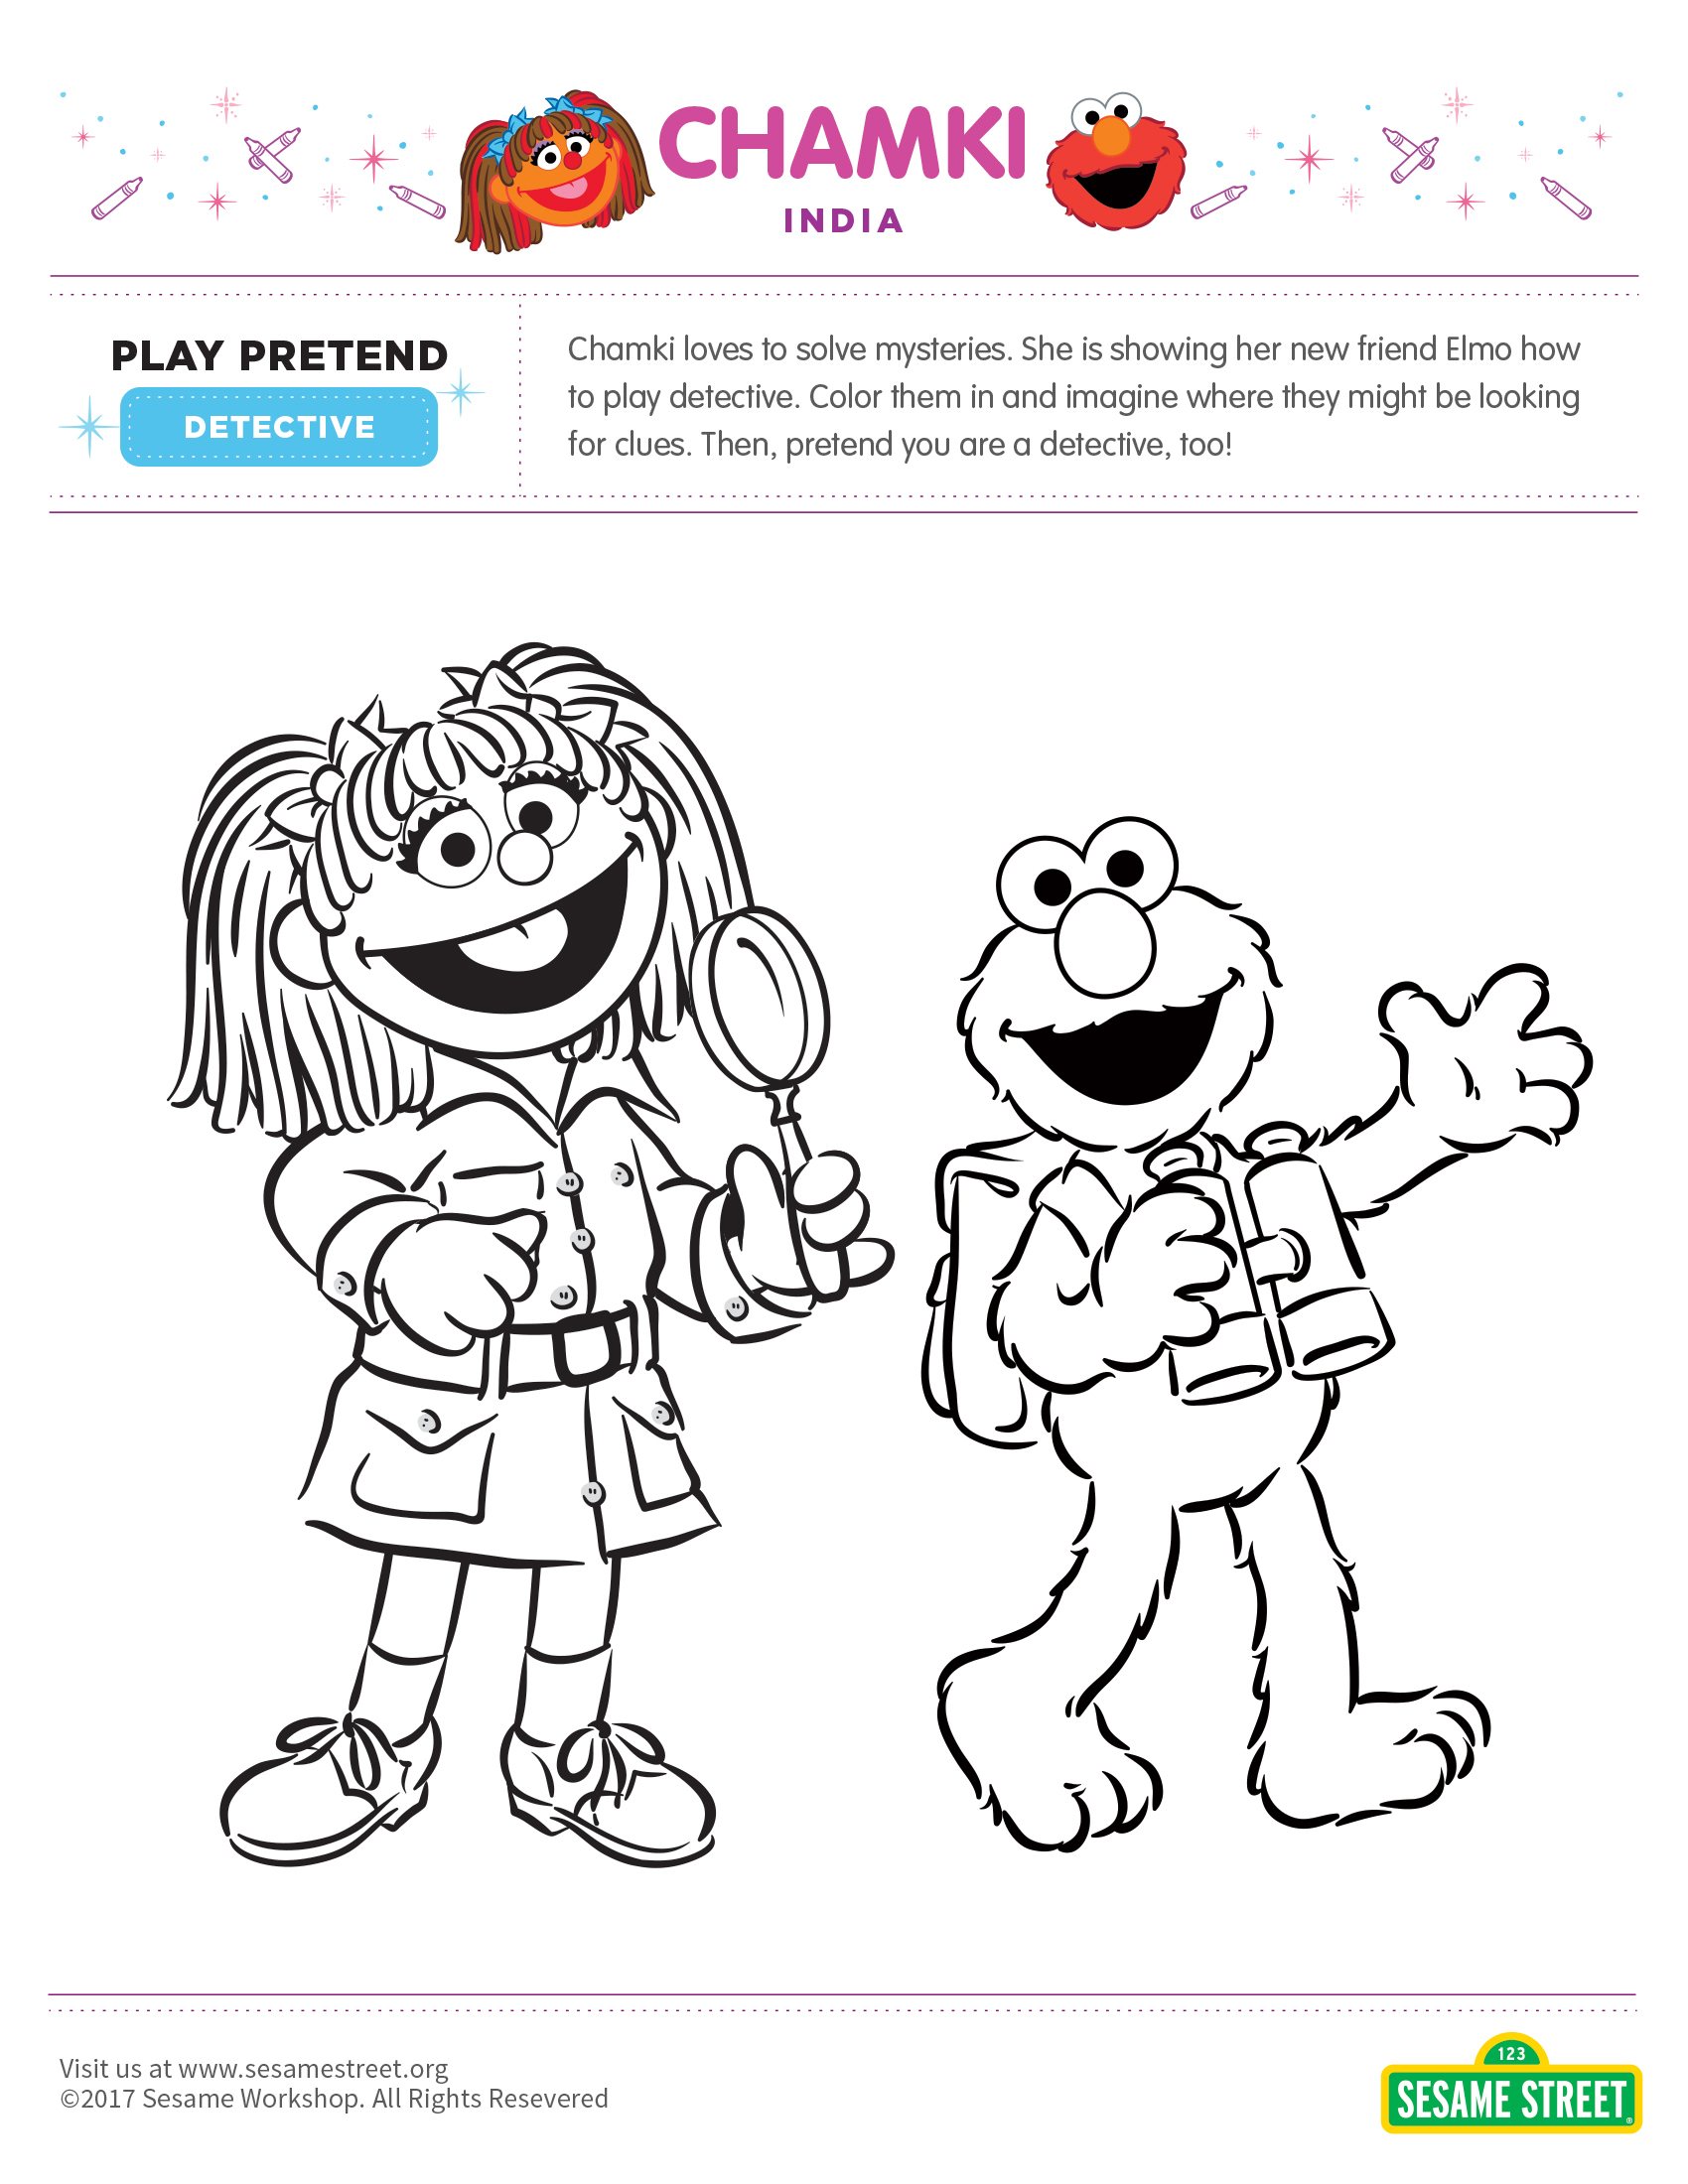 Art Sesame Street PBSKids (With images) Sesame